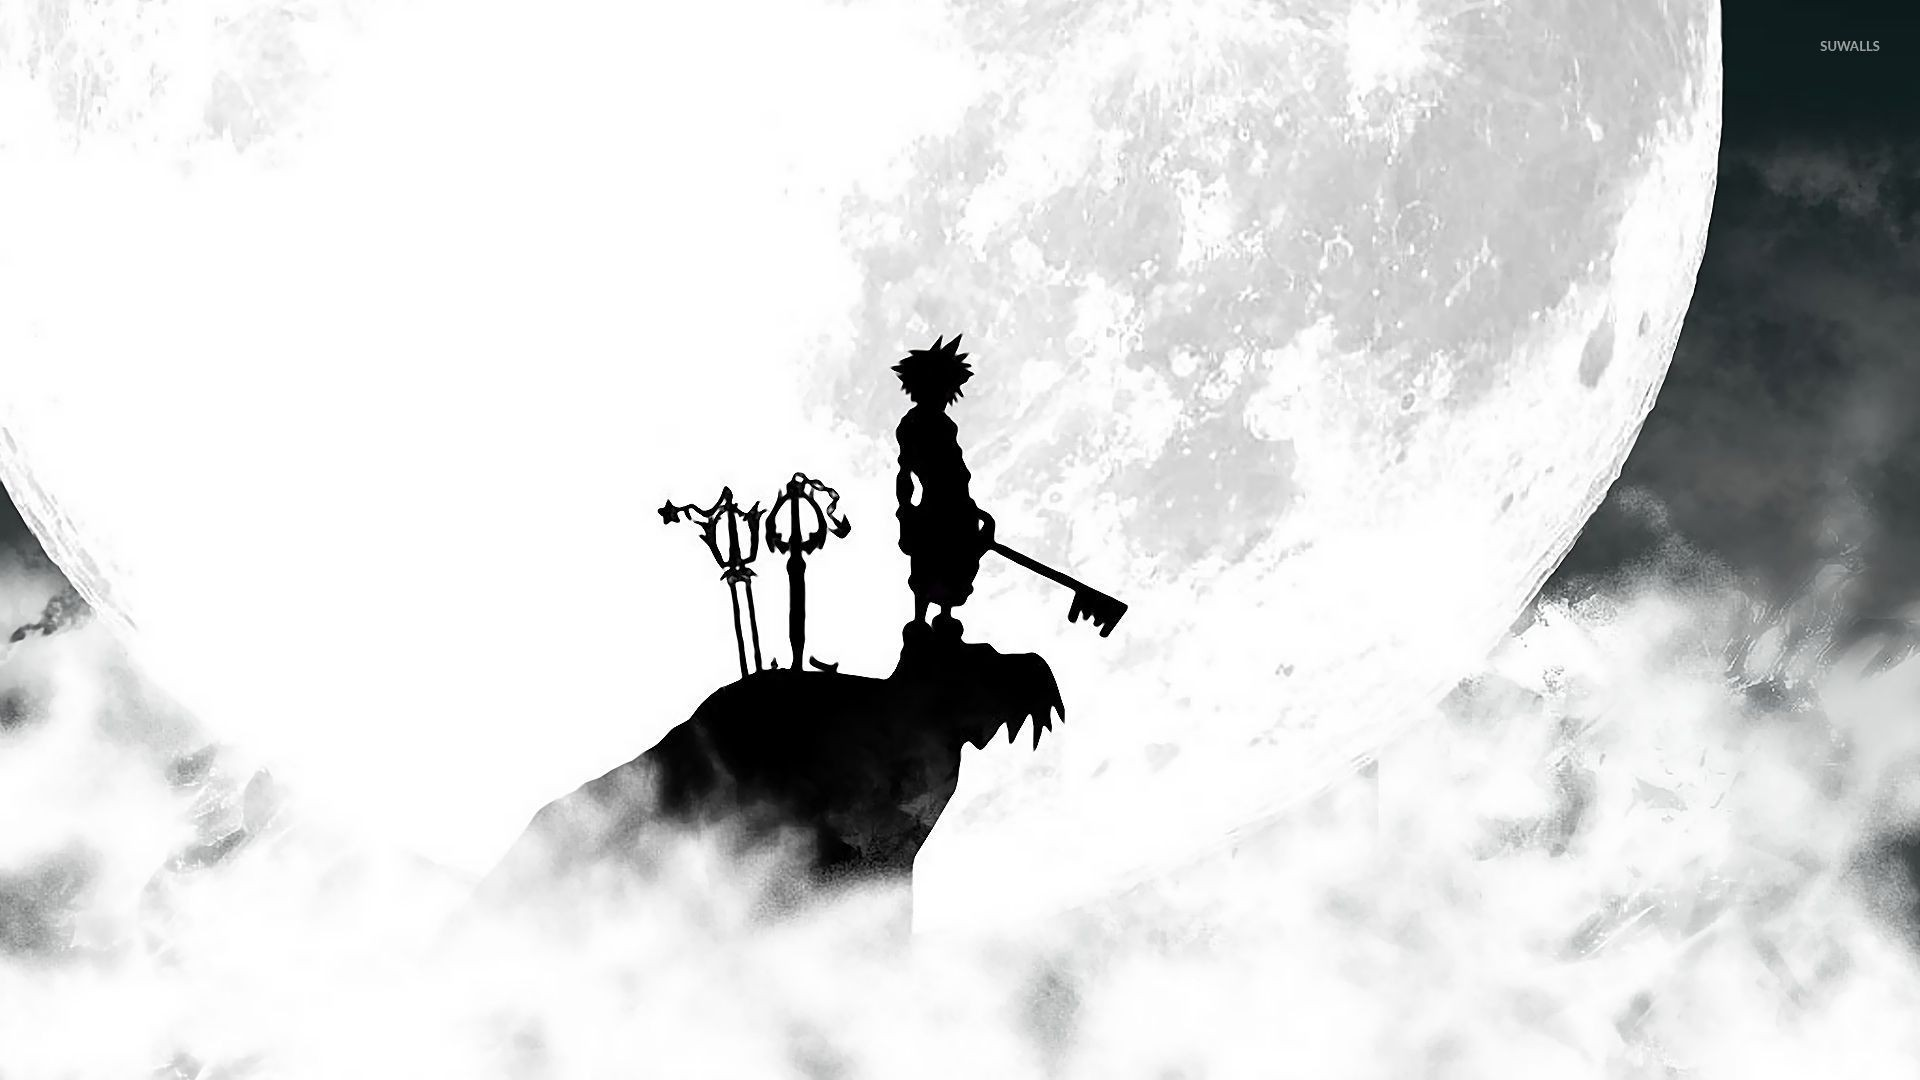 Kingdom Hearts Sora Wallpaper 1920x1080 Kingdom Hearts wallpap...